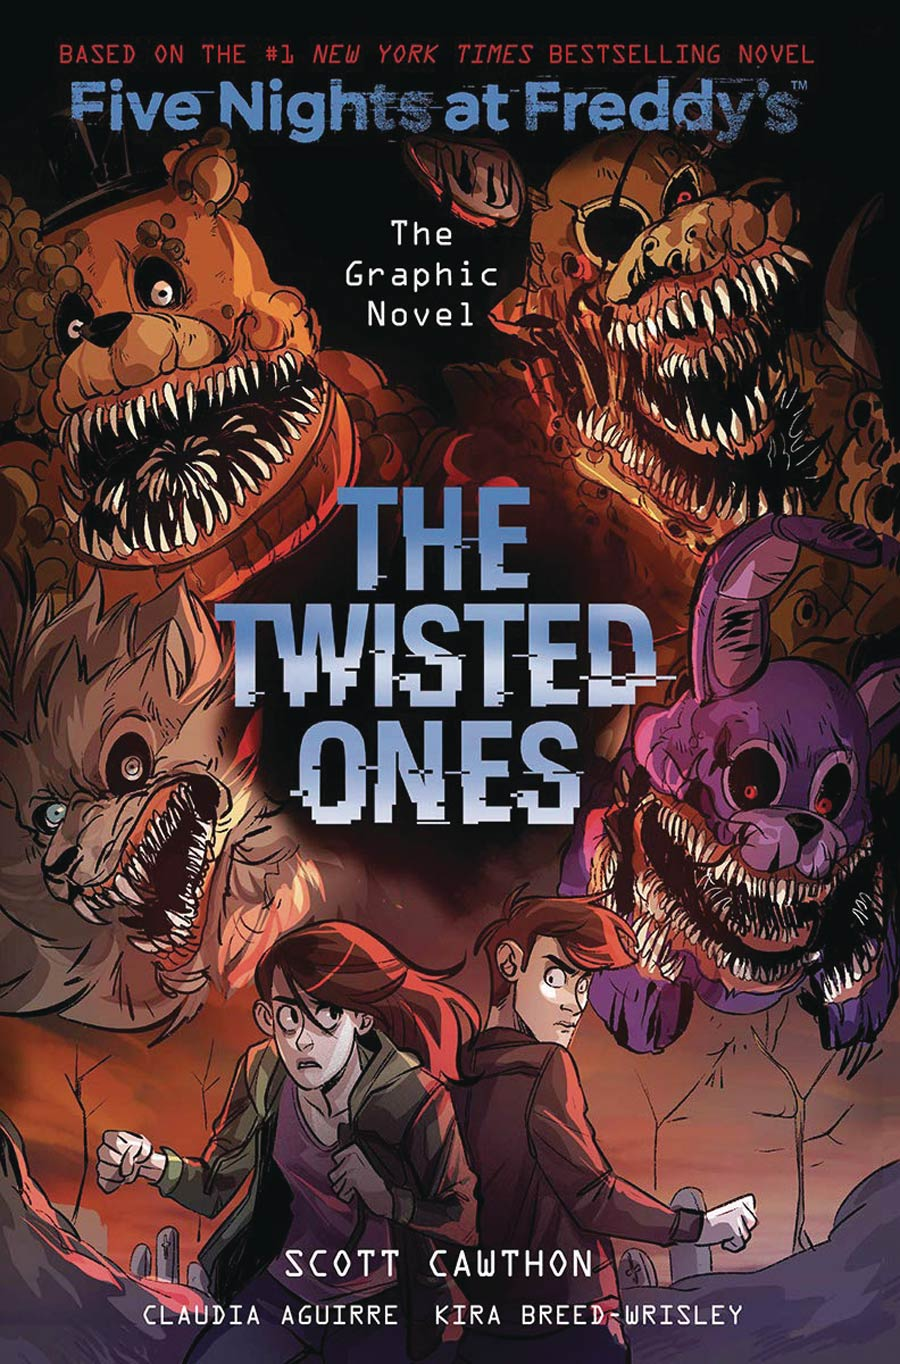 Five Nights At Freddys The Graphic Novel Vol 2 The Twisted Ones TP